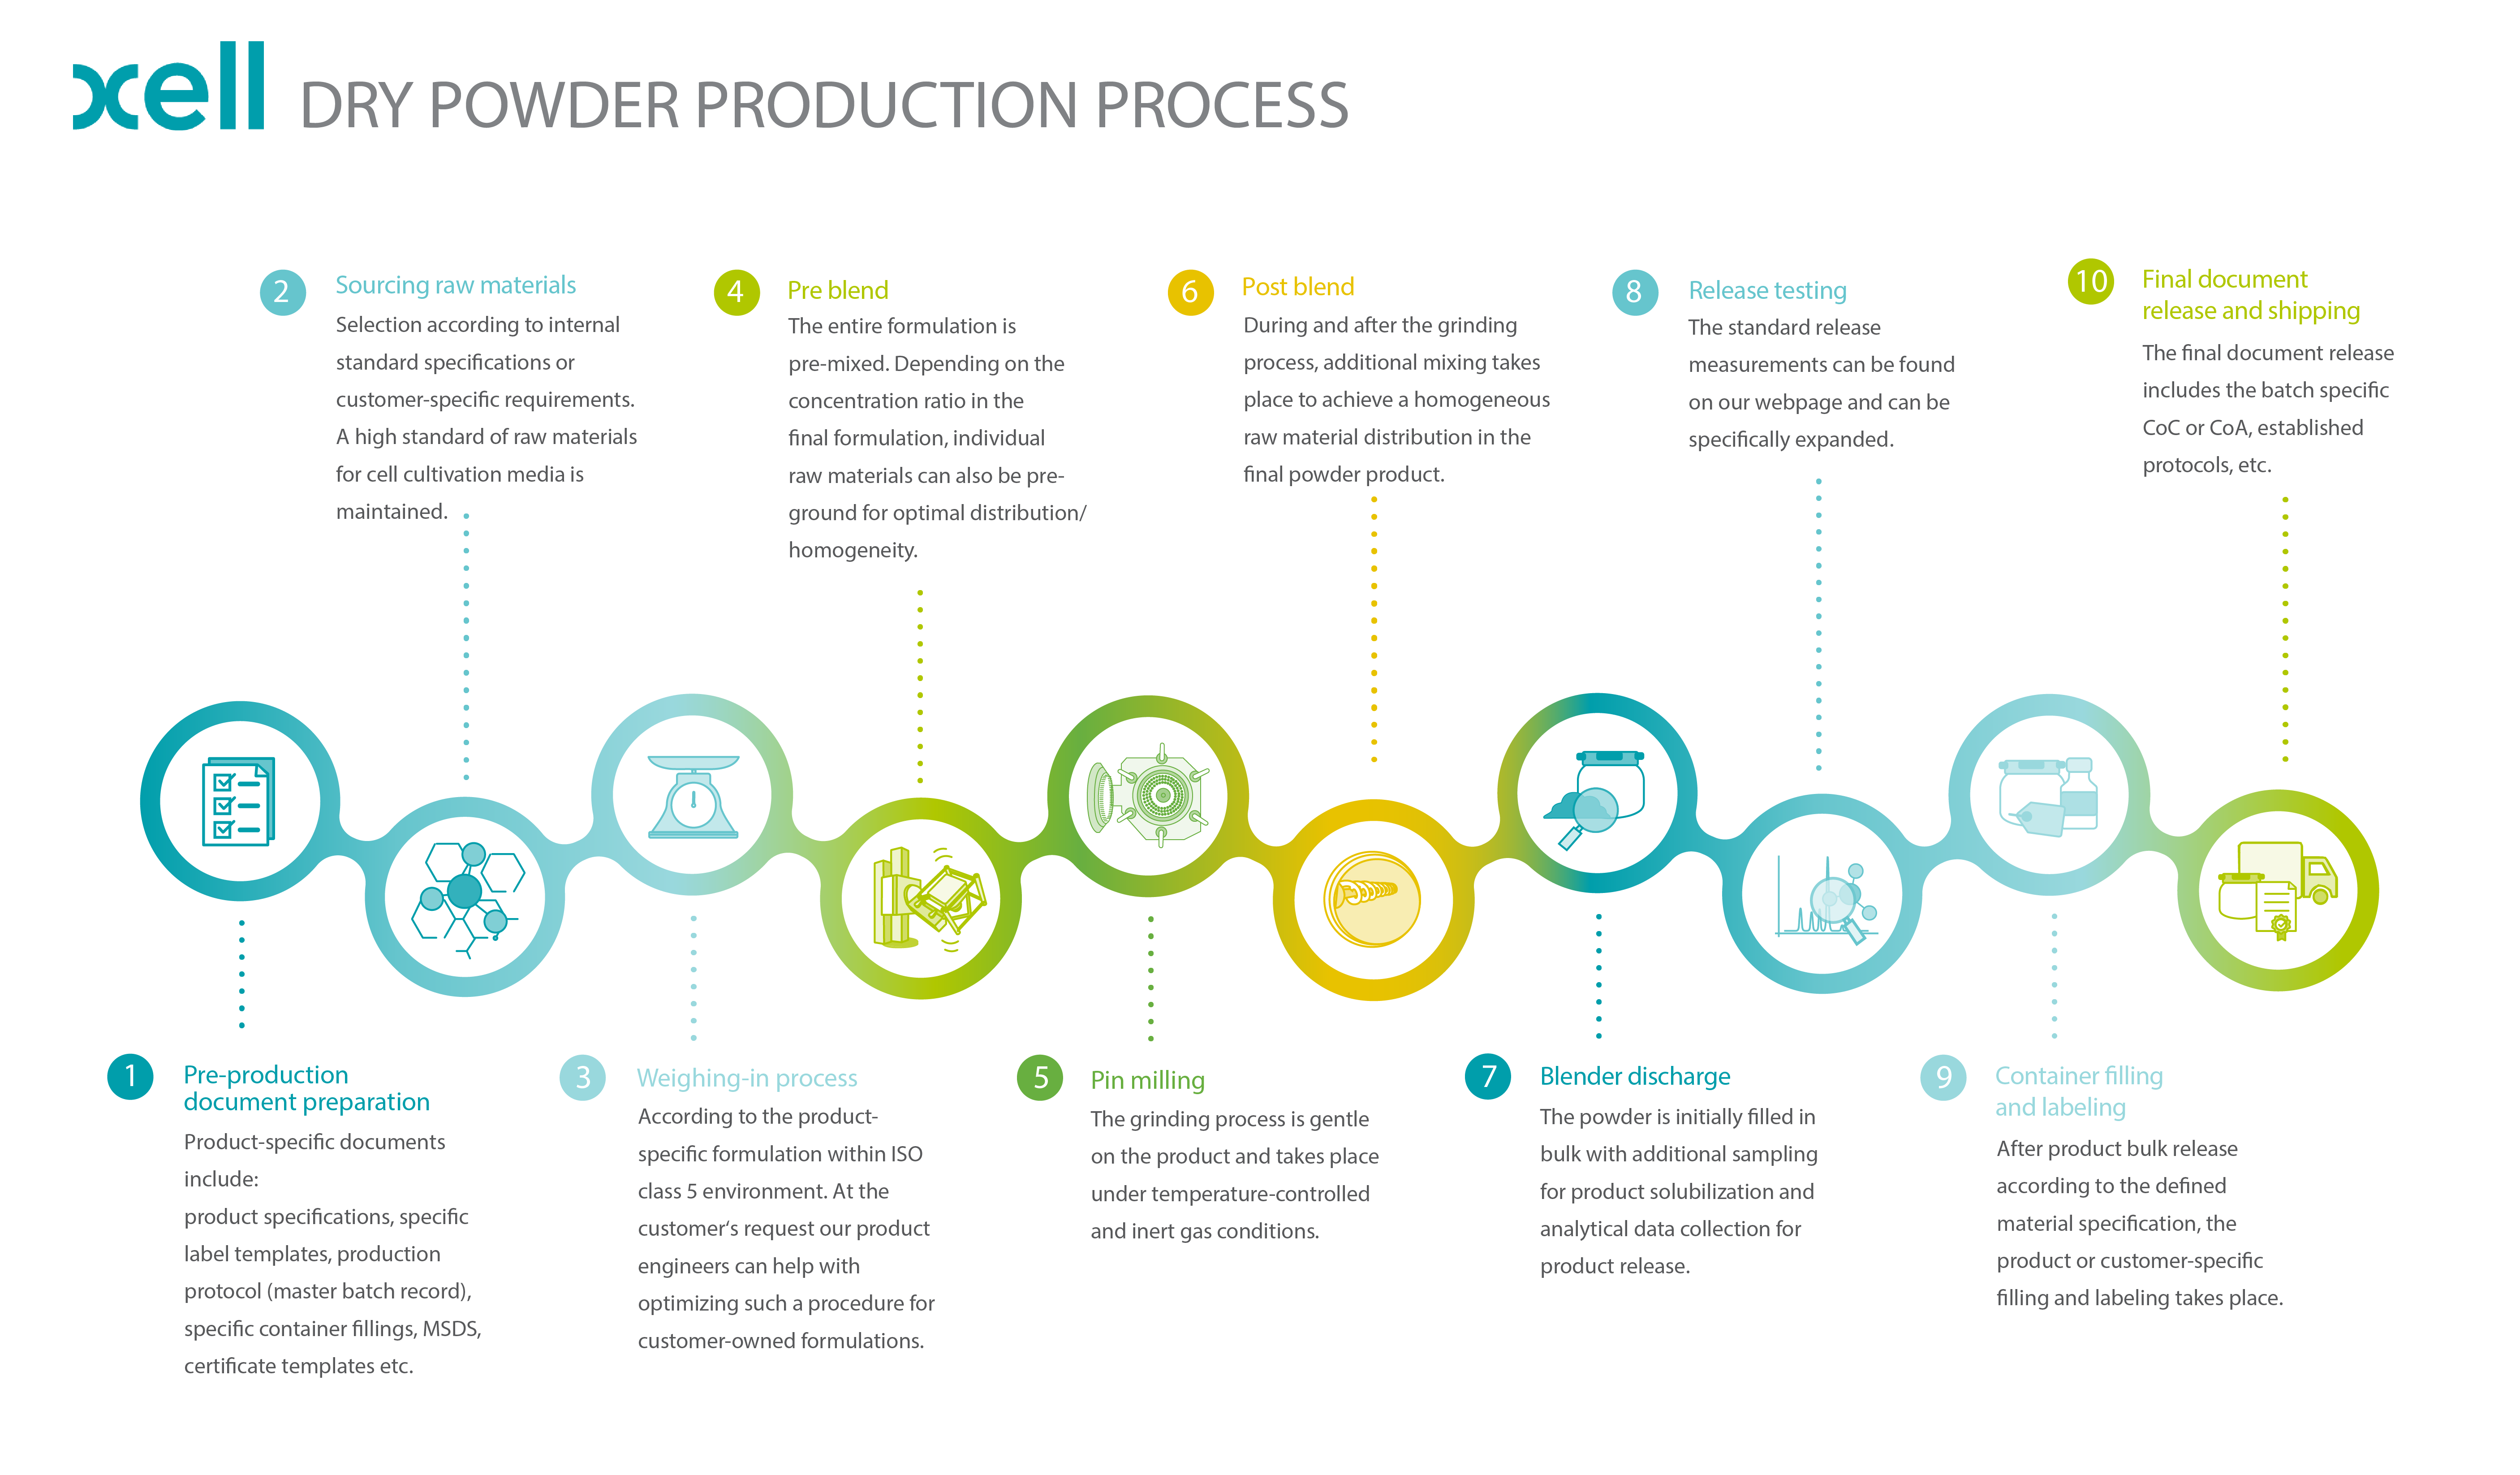 Xells Dry Powder Production Process explained